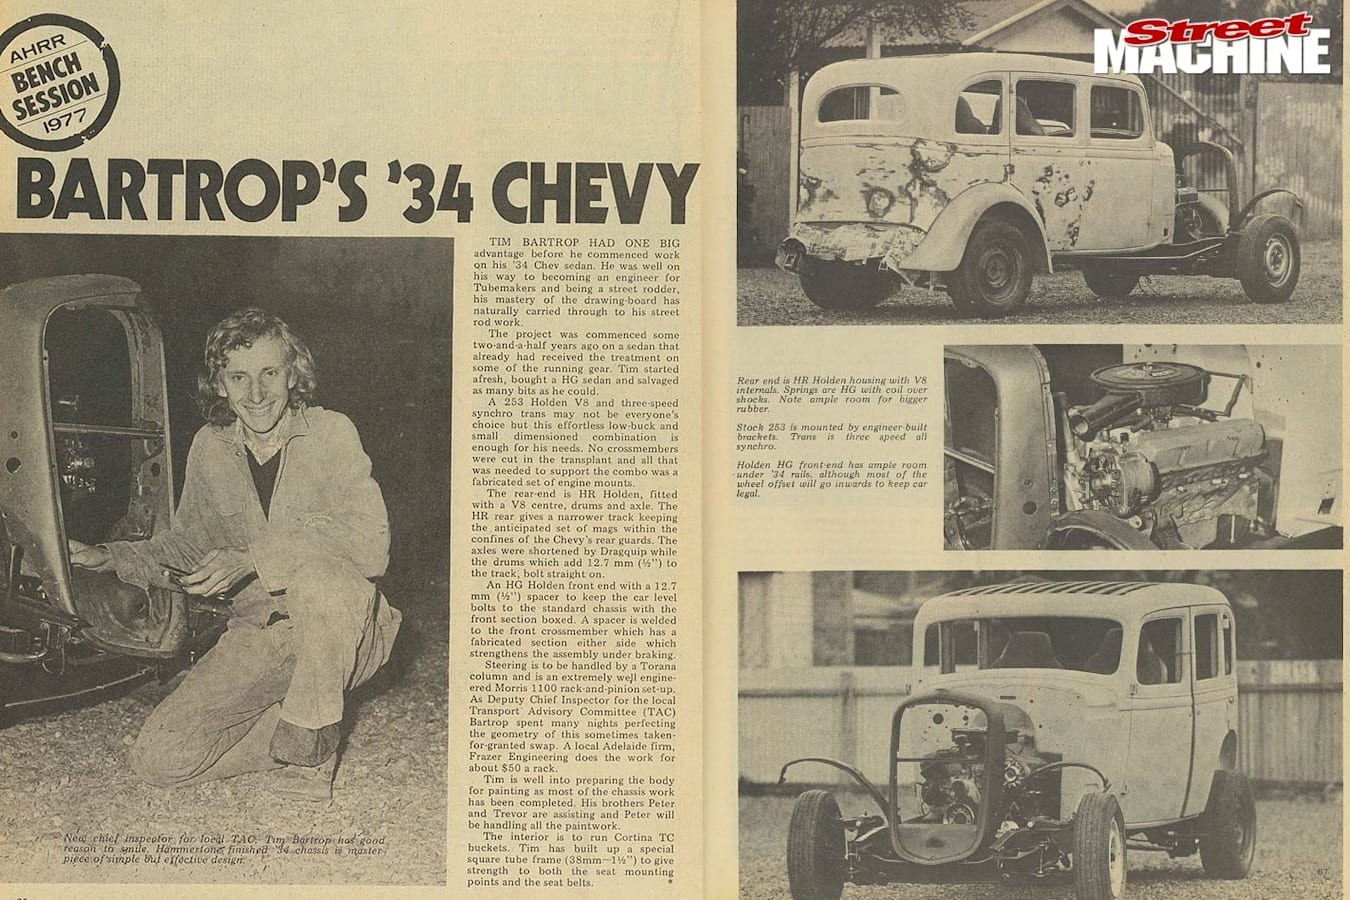 1934 Chevy newspaper clippings